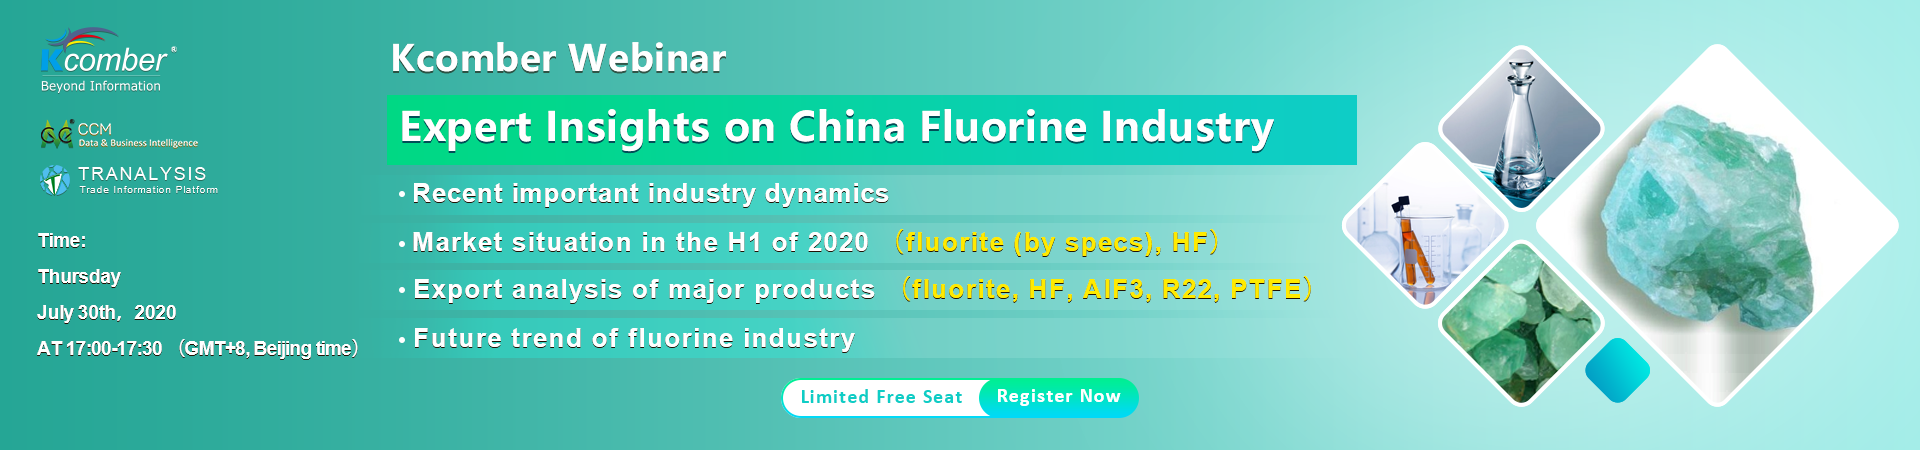 Expert Insights on China Fluorine Industry